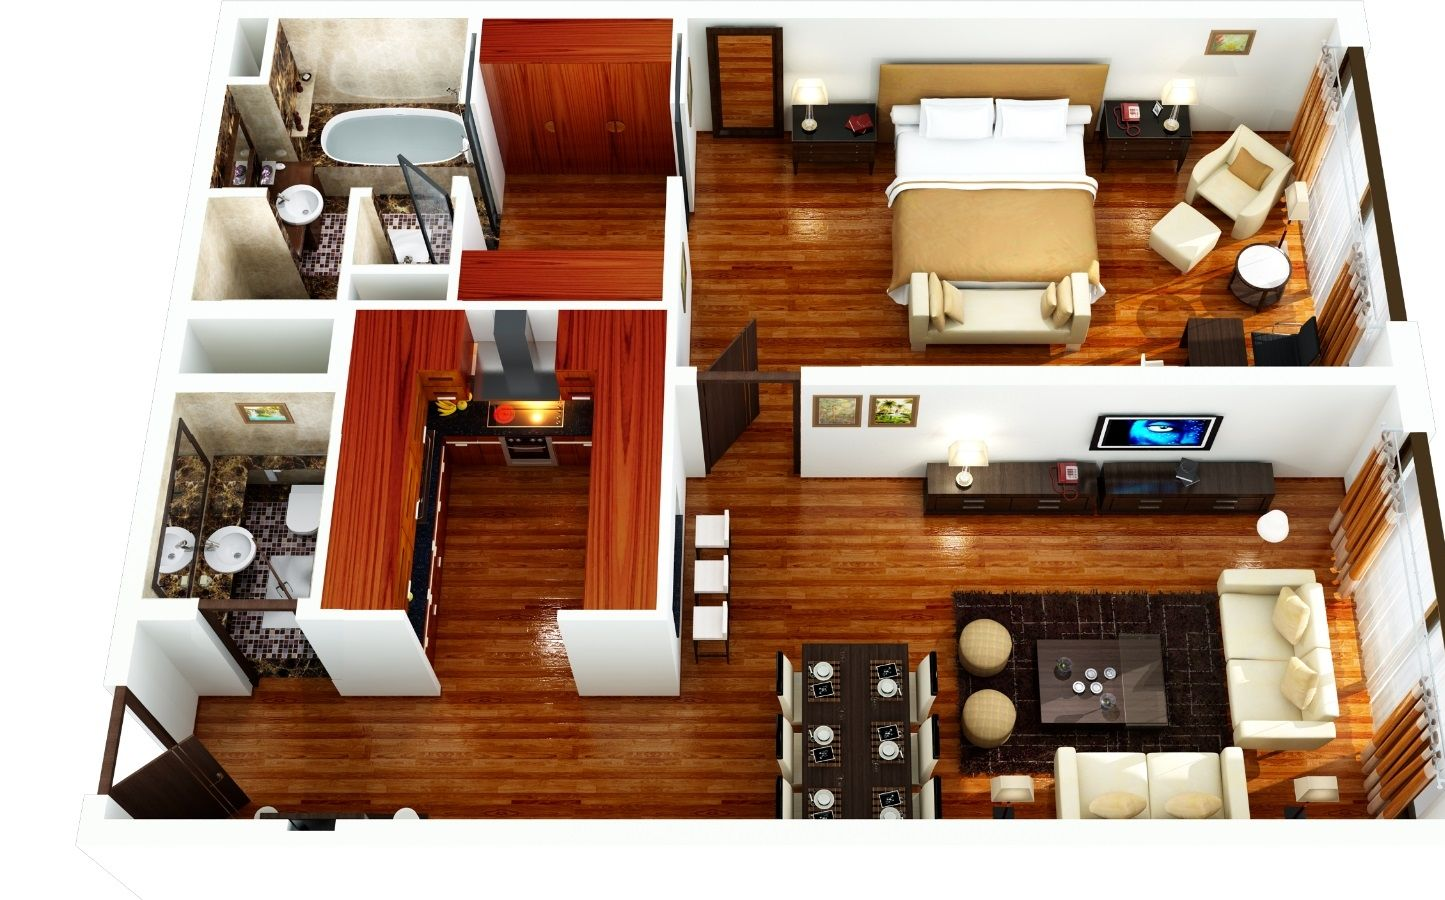 brooklyn in unique ktrdecor fee bedroom apartments affordable no fresh cheapest ny apartment one